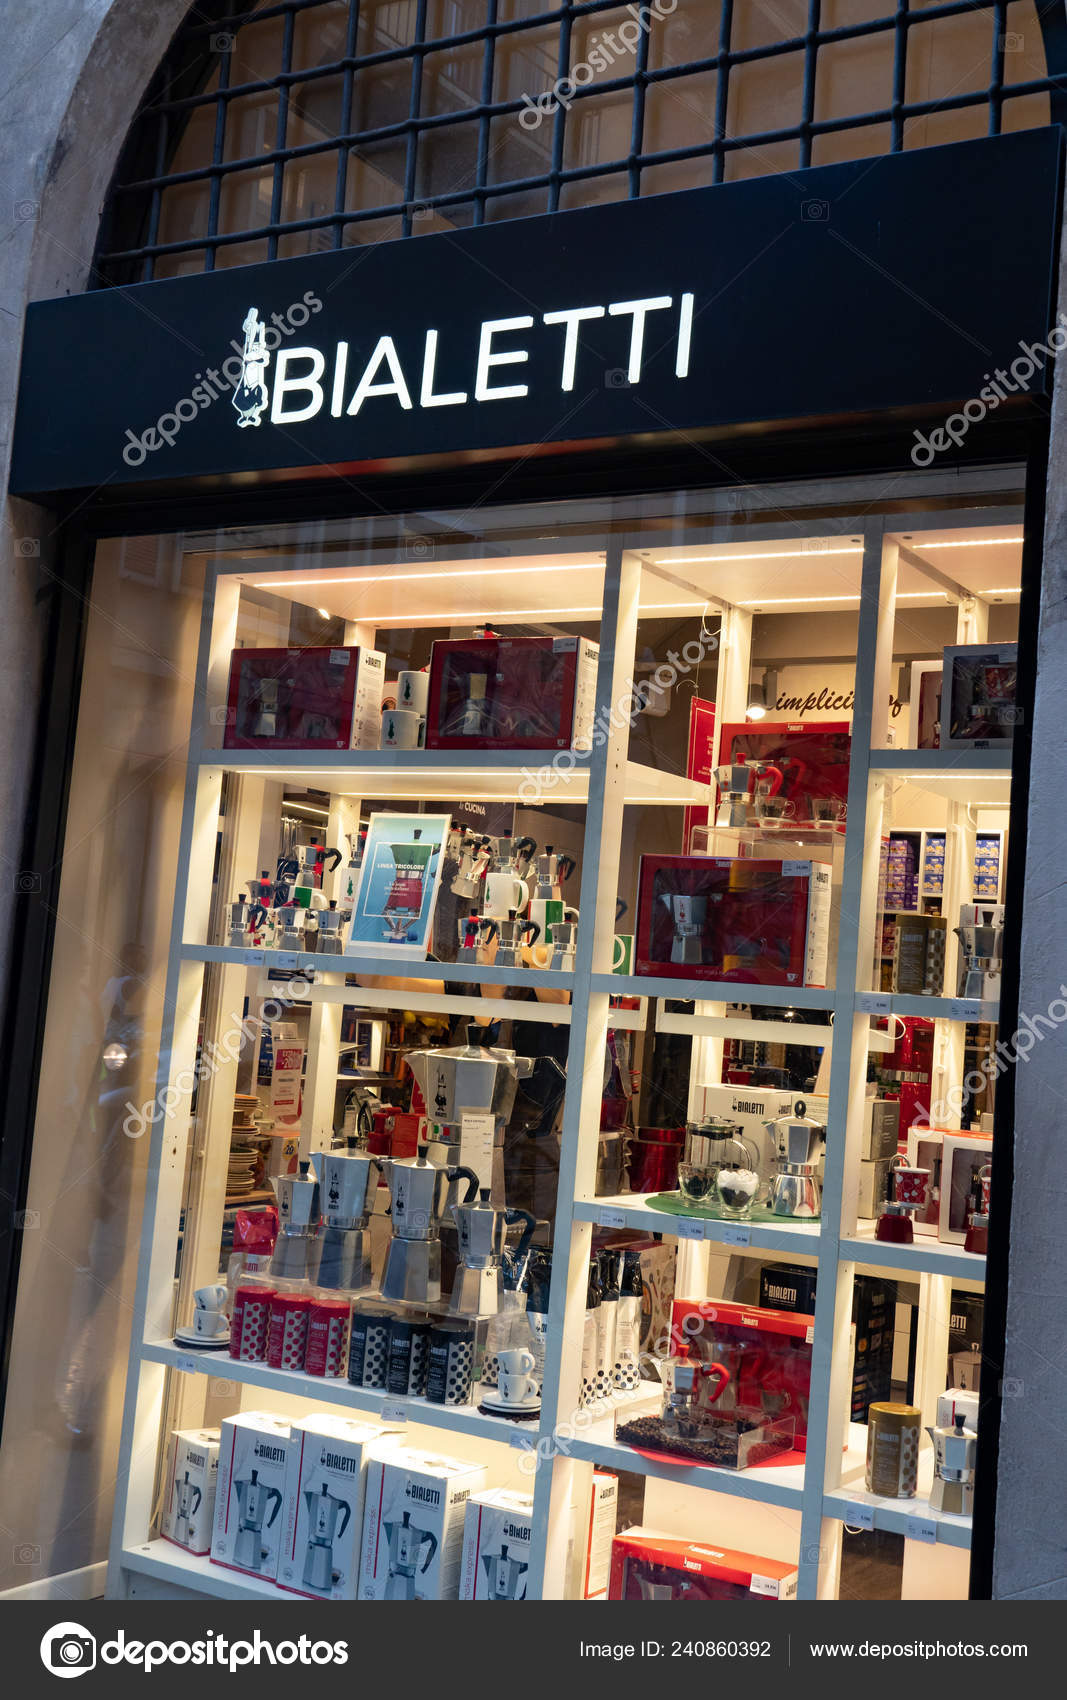 d4d55ffc18ca Verona, Italy - September 5, 2018: Bialetti store. Founded in Italy in  1919, the company provides the most famous moka pot, a stove-top or  electric coffee ...